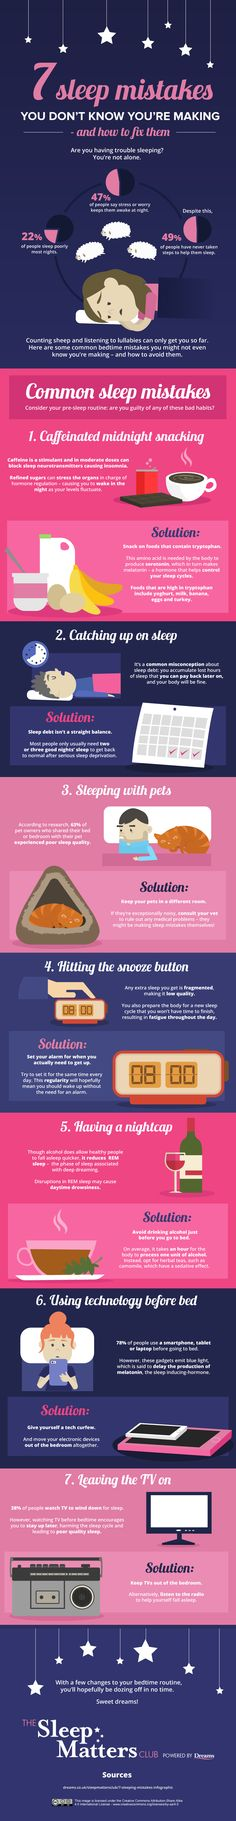 7 Sleep Mistakes You Don't Know You're Making - And How To Fix Them. #infographic